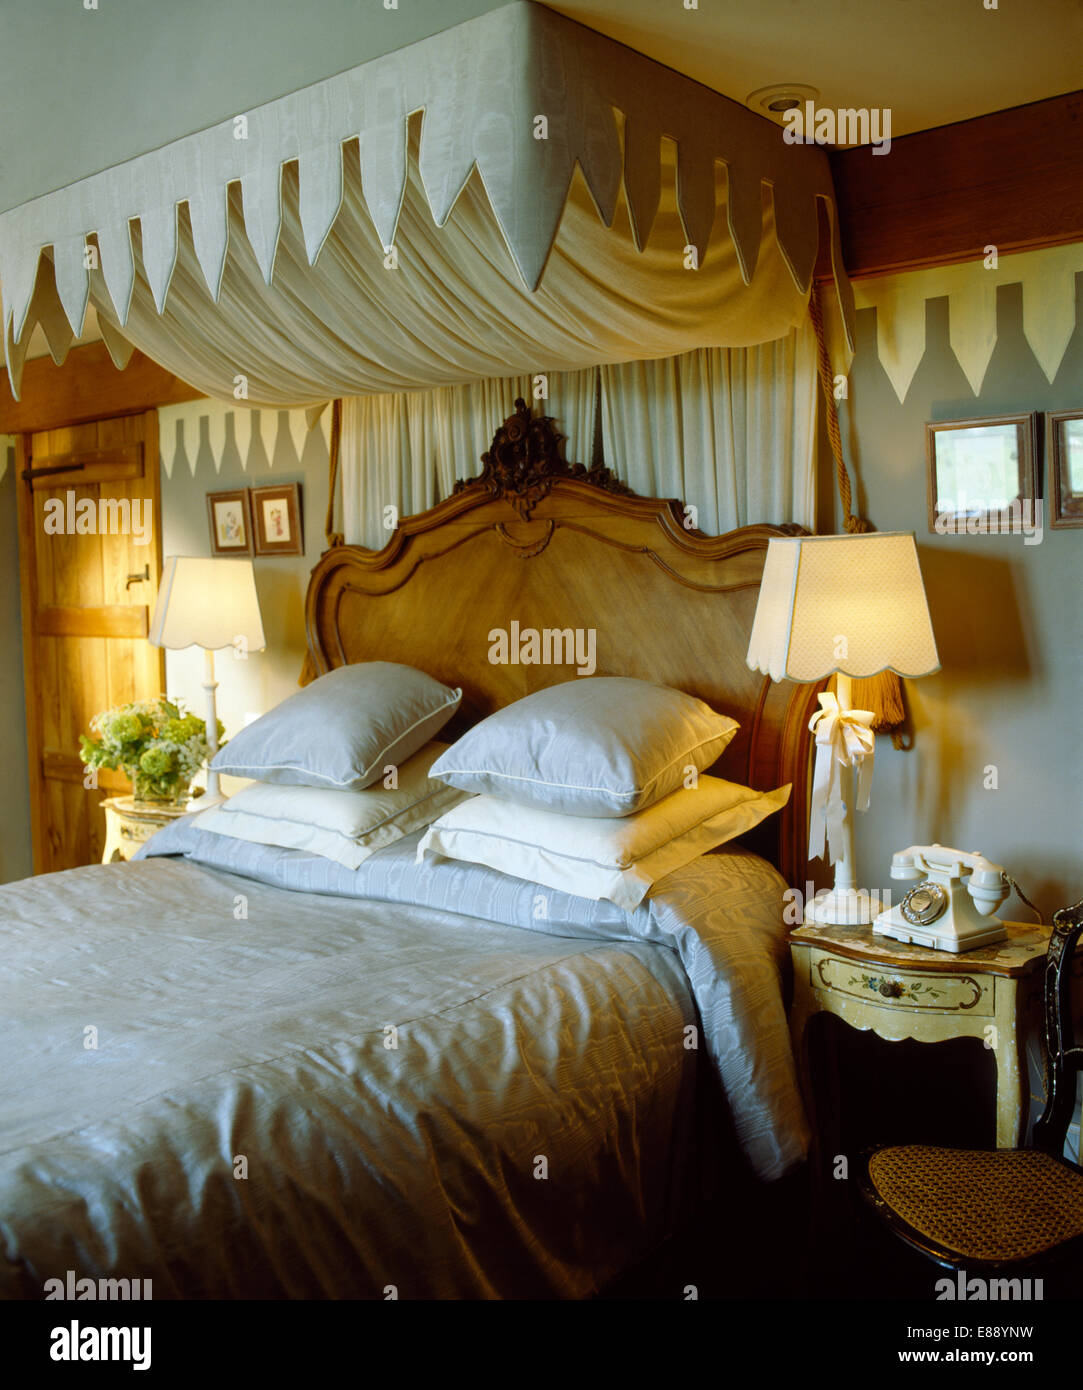 Cream canopy and drapes above antique wood bed piled with cushions in country bedroom with lighted l&s & Cream canopy and drapes above antique wood bed piled with cushions ...